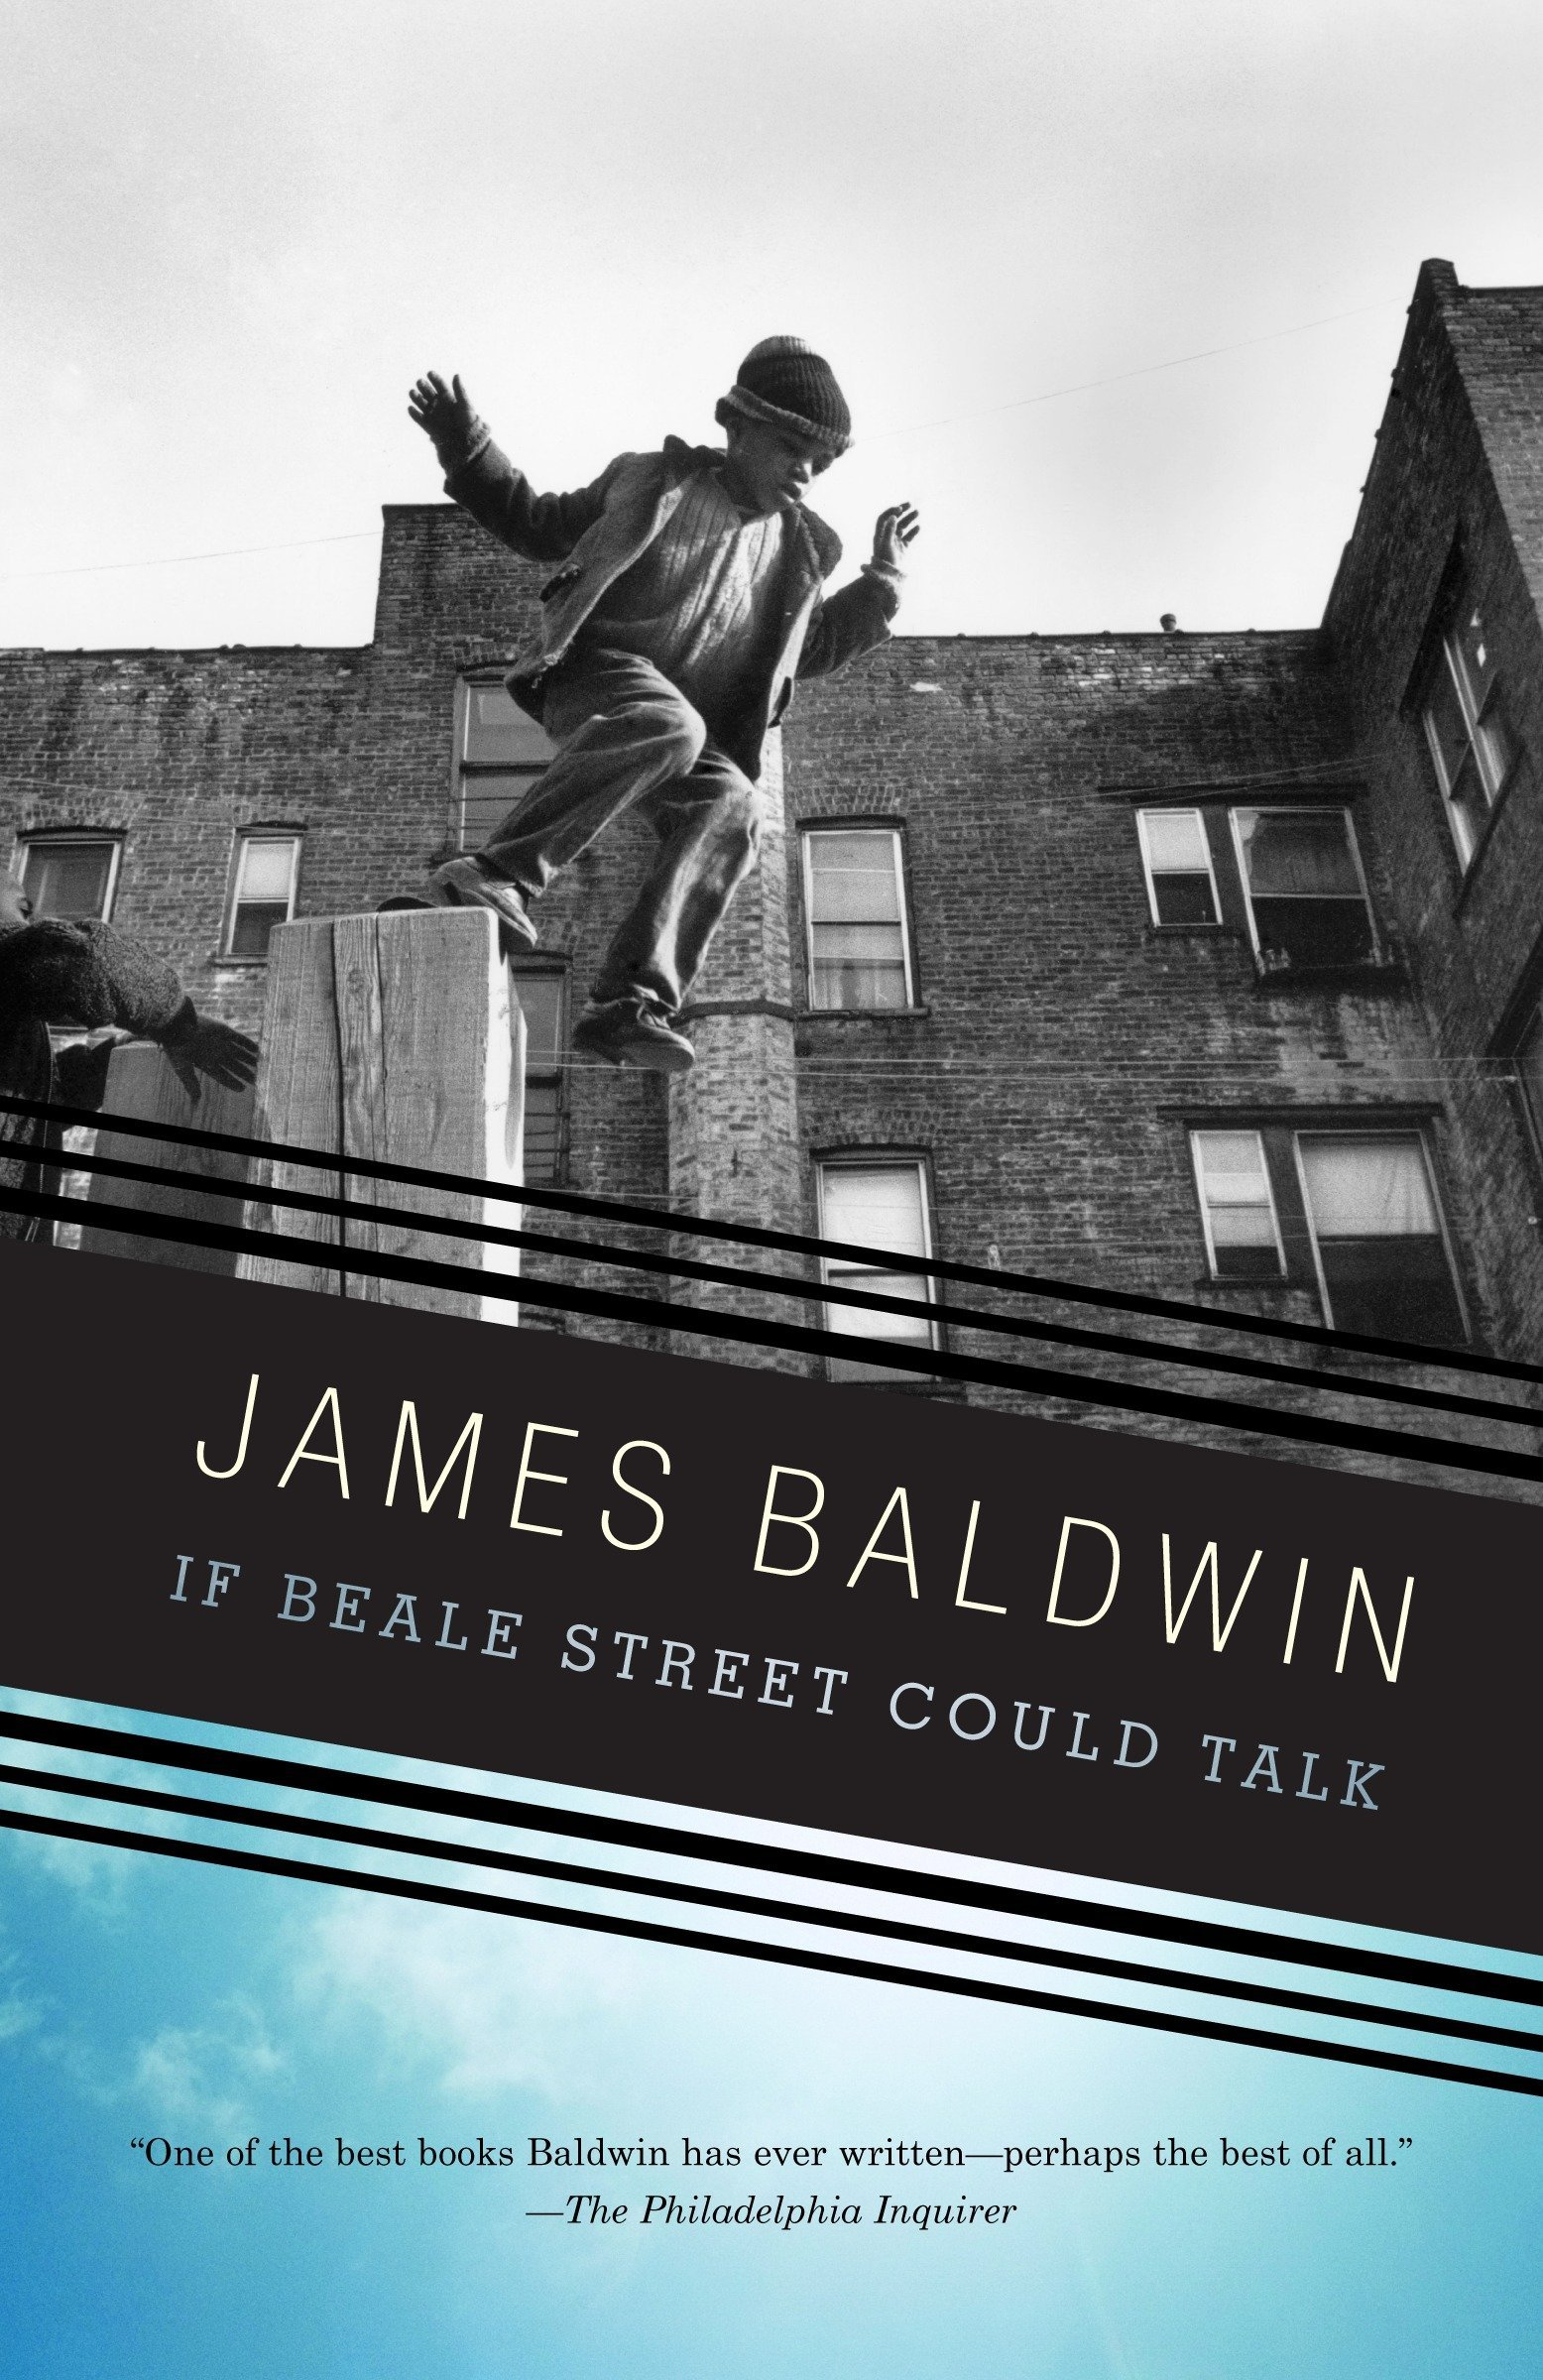 Image result for if beale street could talk book cover